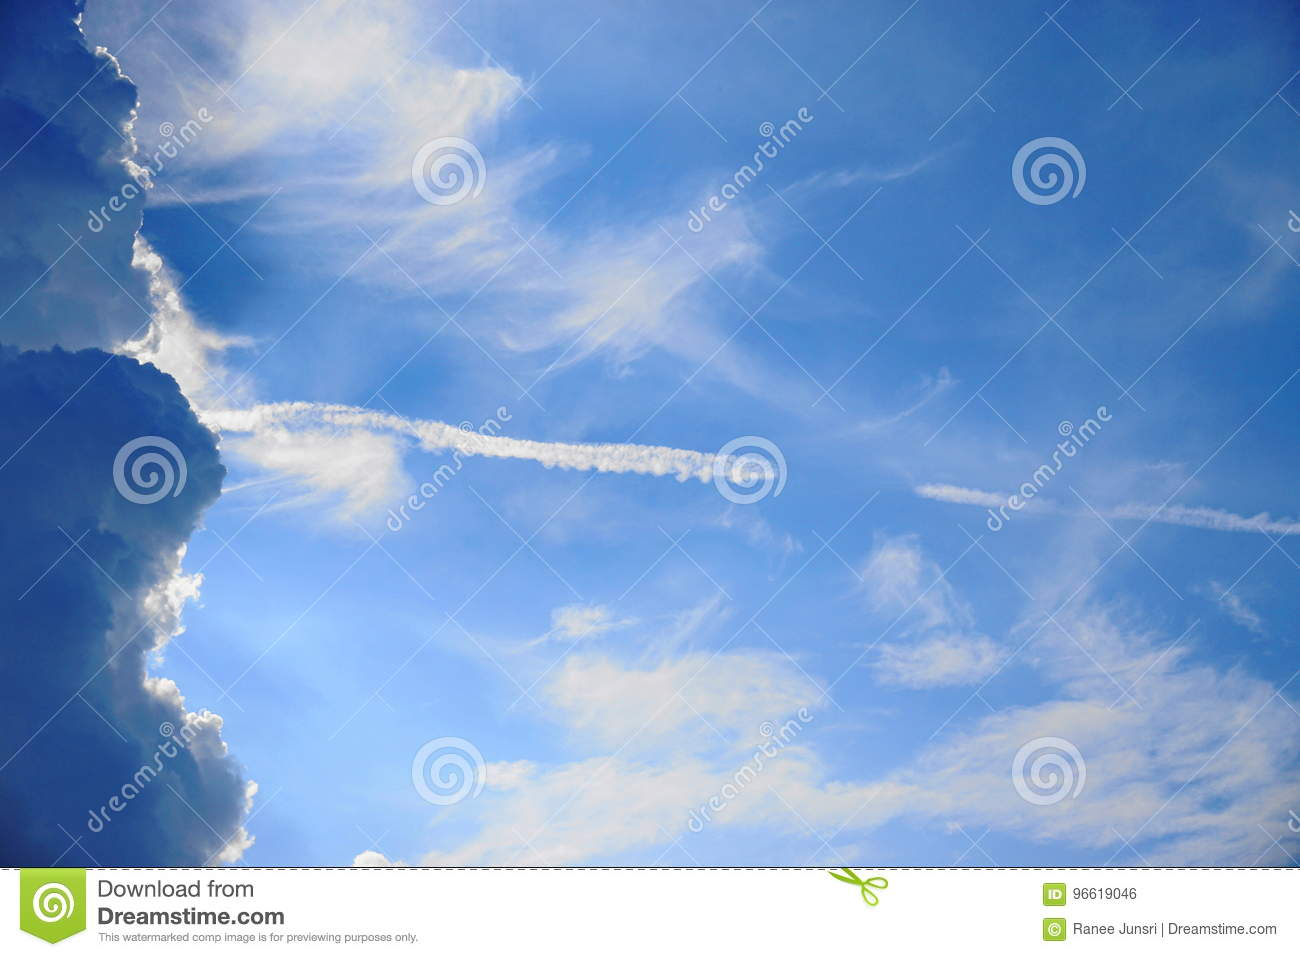 The blue sky with cloud